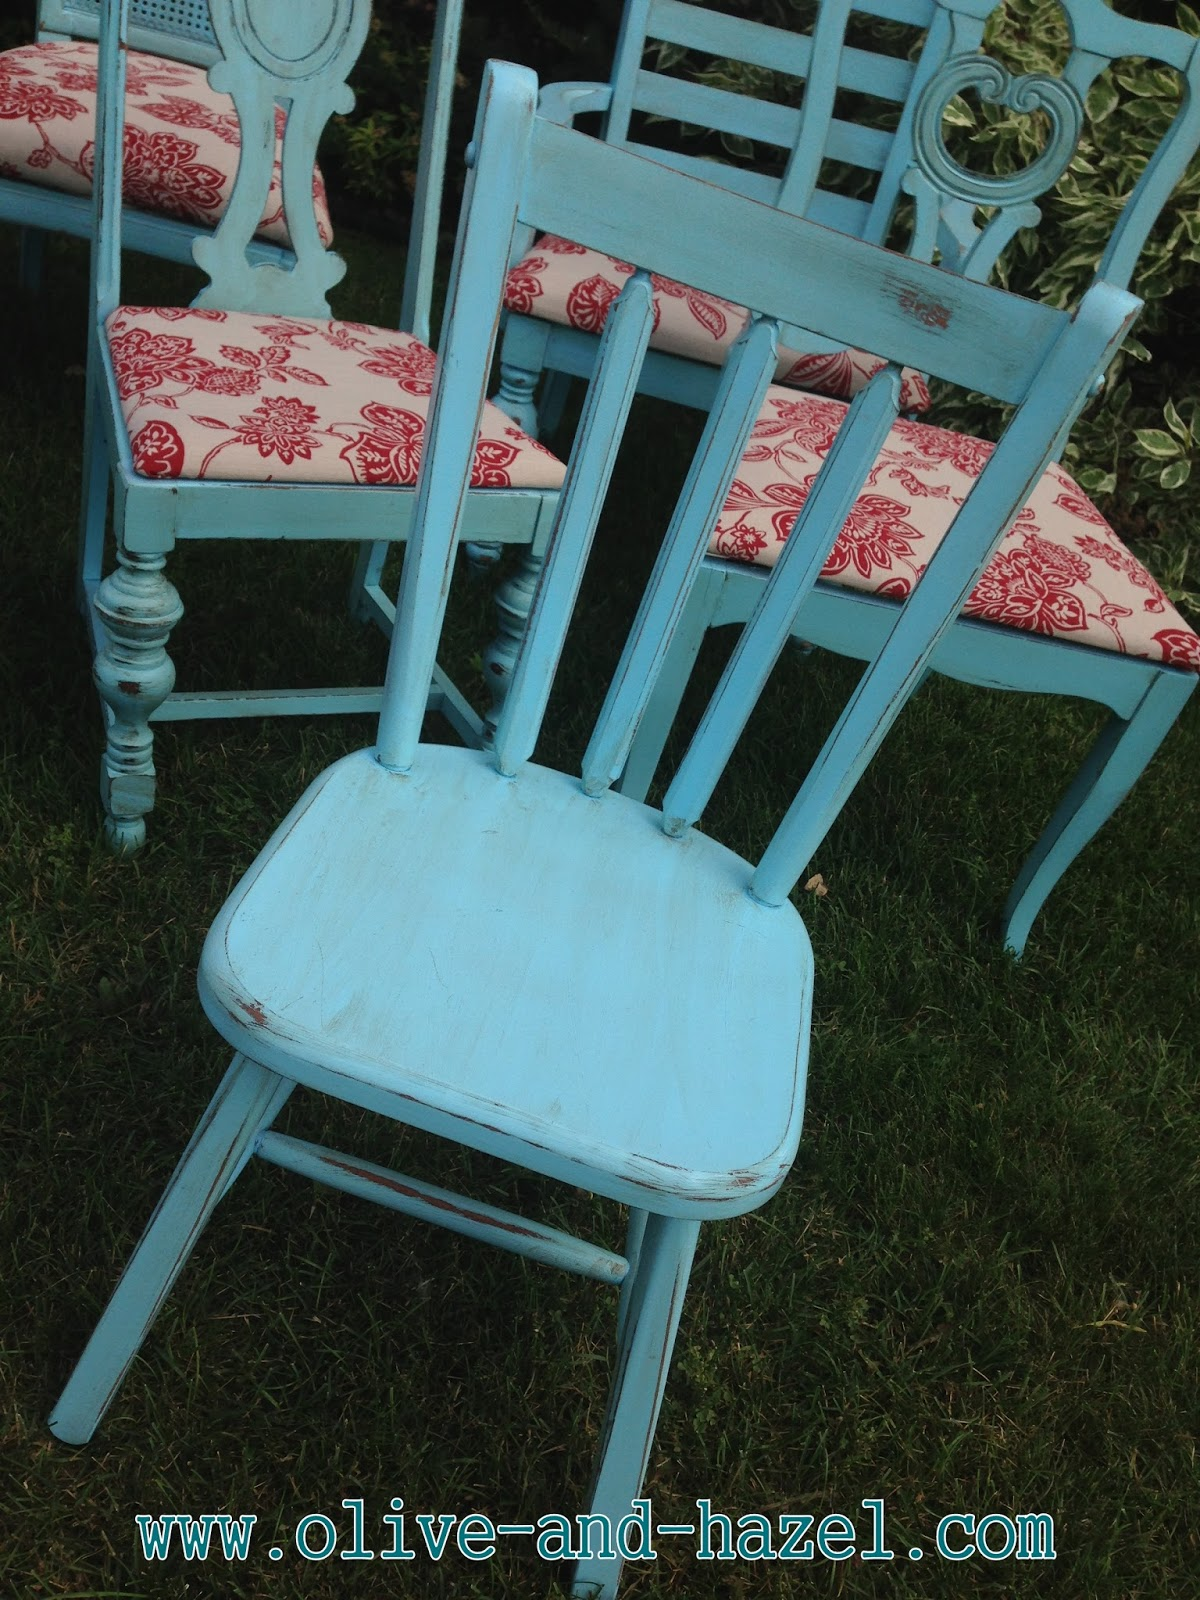 Olive Hazel Decor Co Custom Teal Mismatched Dining Chairs